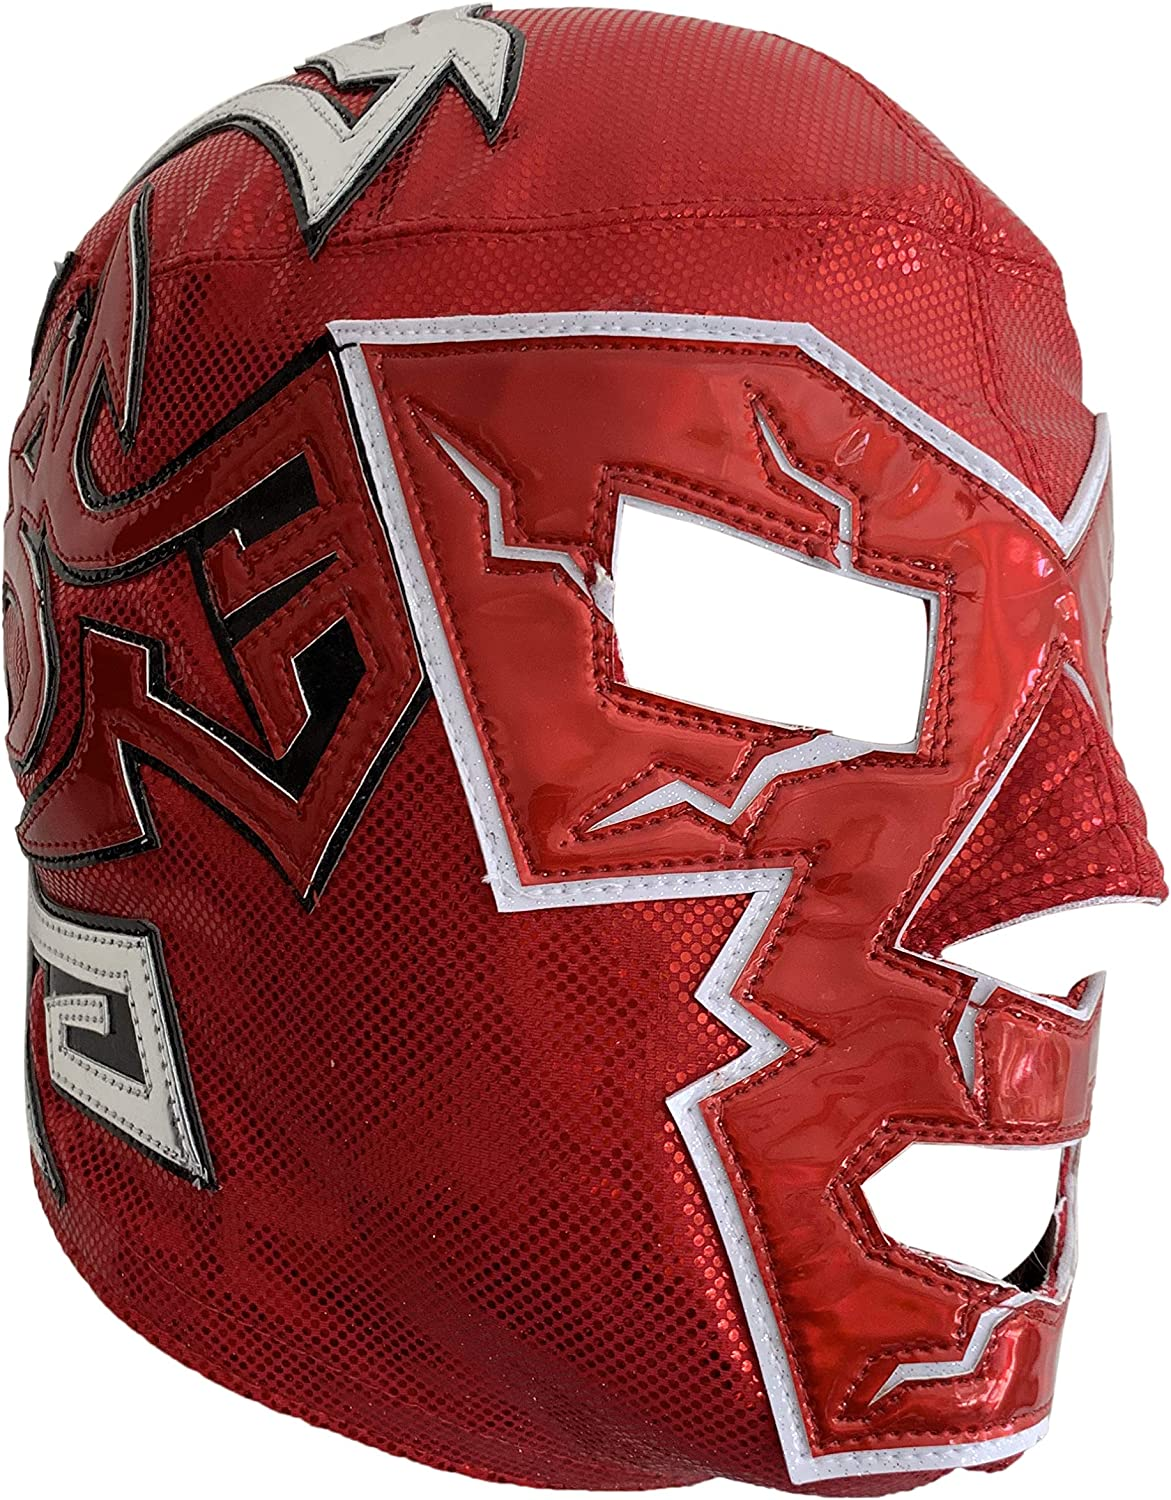 Dr Wagner Adult Pro - Fit Lucha Libre Luchador Mexican Wrestling Mask Costume